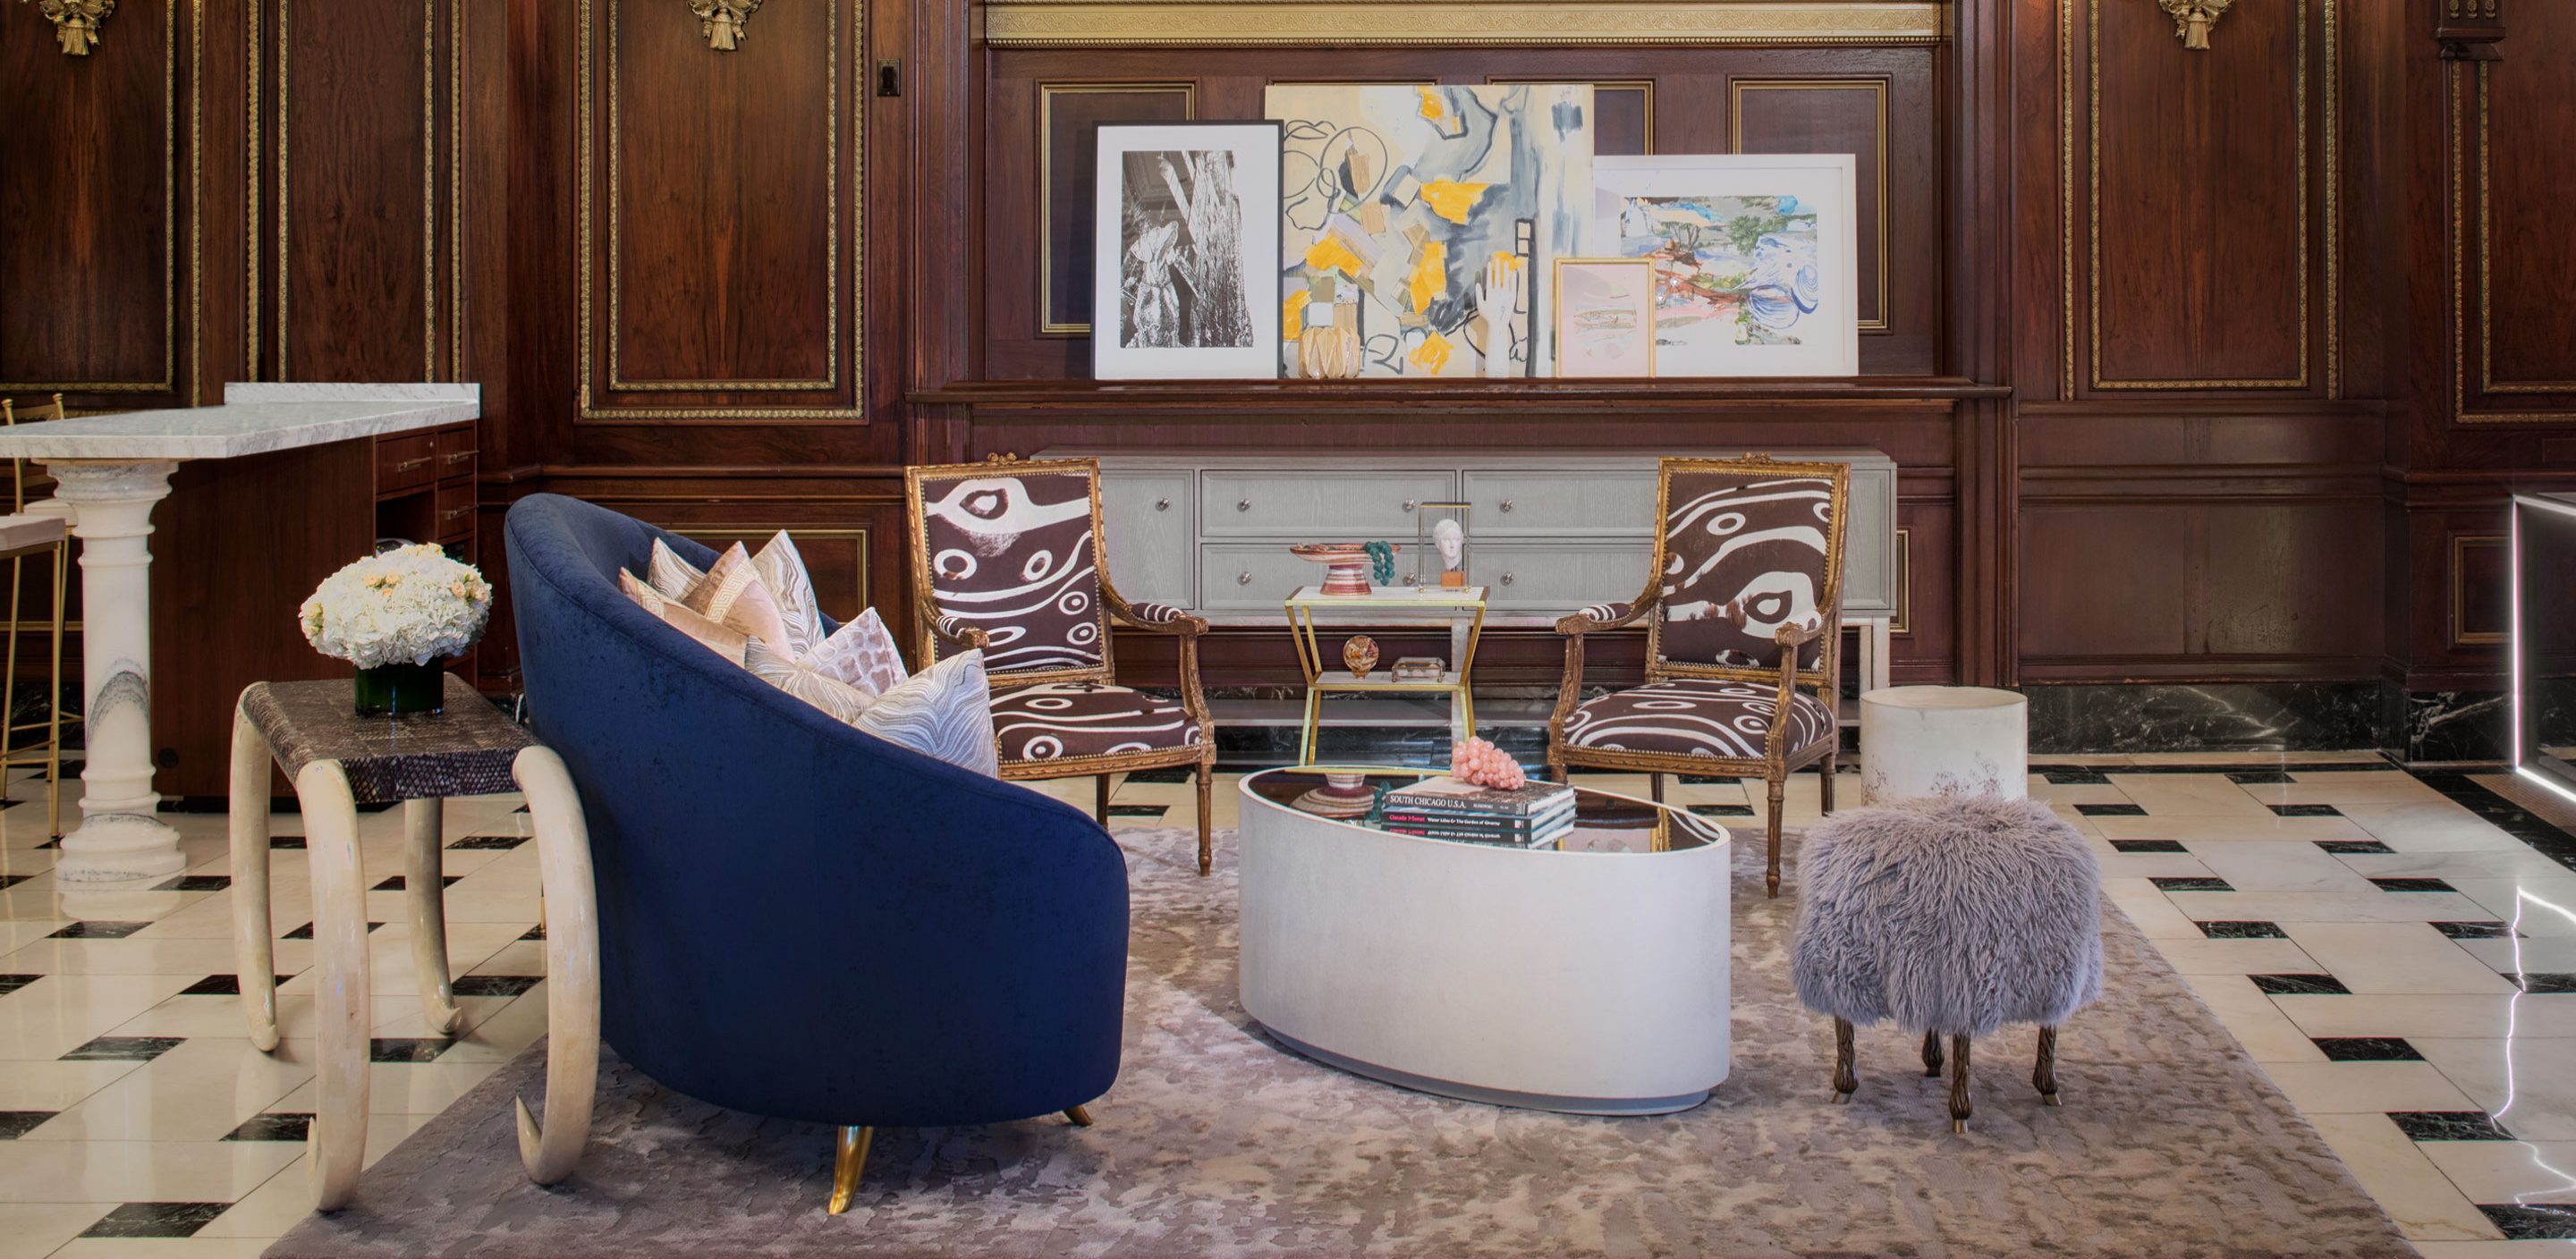 supporting the arts in a district known for murals and art schools the blackstone acts as a community patron by displaying rotating collections by local - Blackstone Home Design